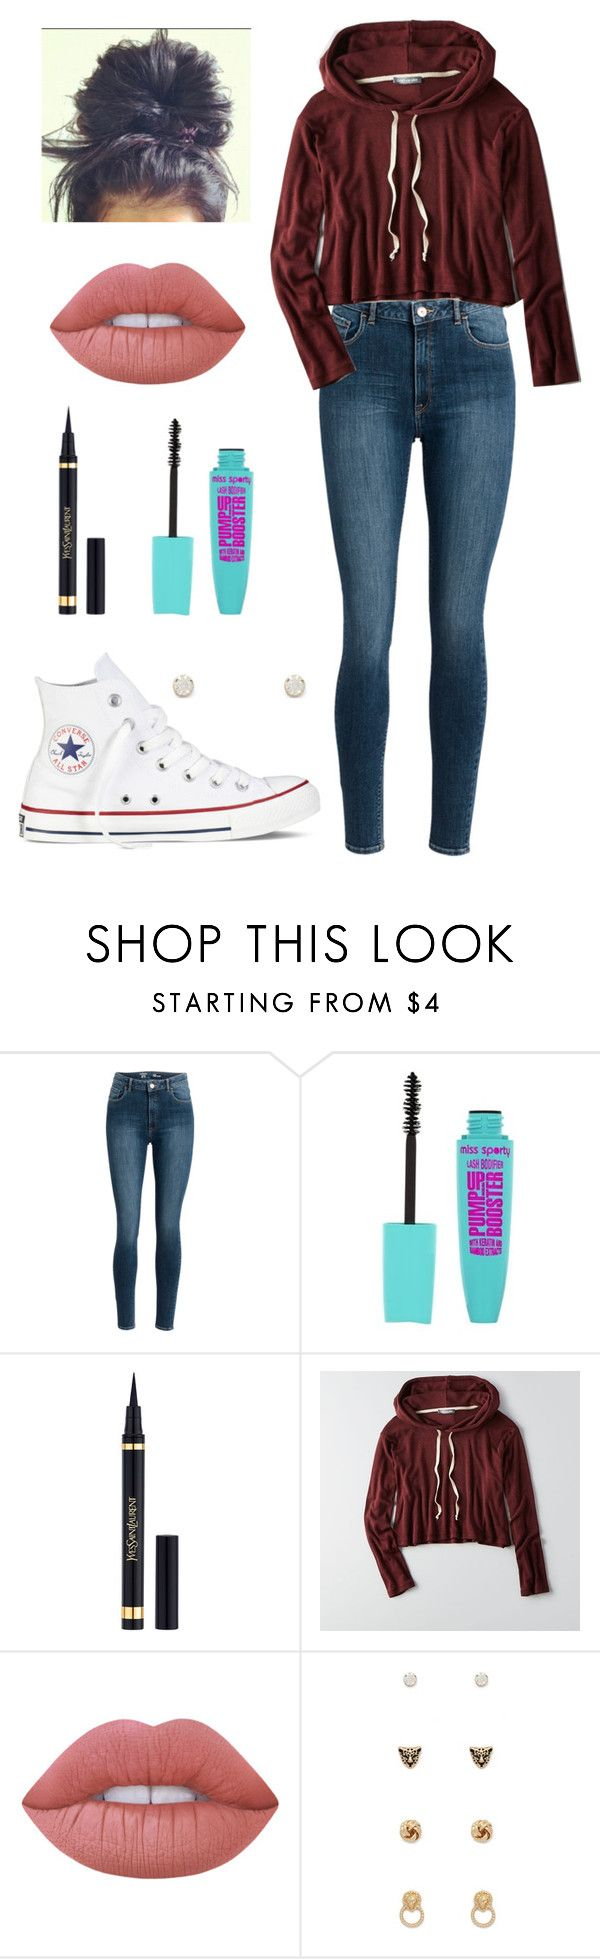 """Inspired by Liza Koshy"" by mystics10 ❤ liked on Polyvore featuring Yves Saint Laurent, American Eagle Outfitters, Lime Crime, Forever 21 and Converse"